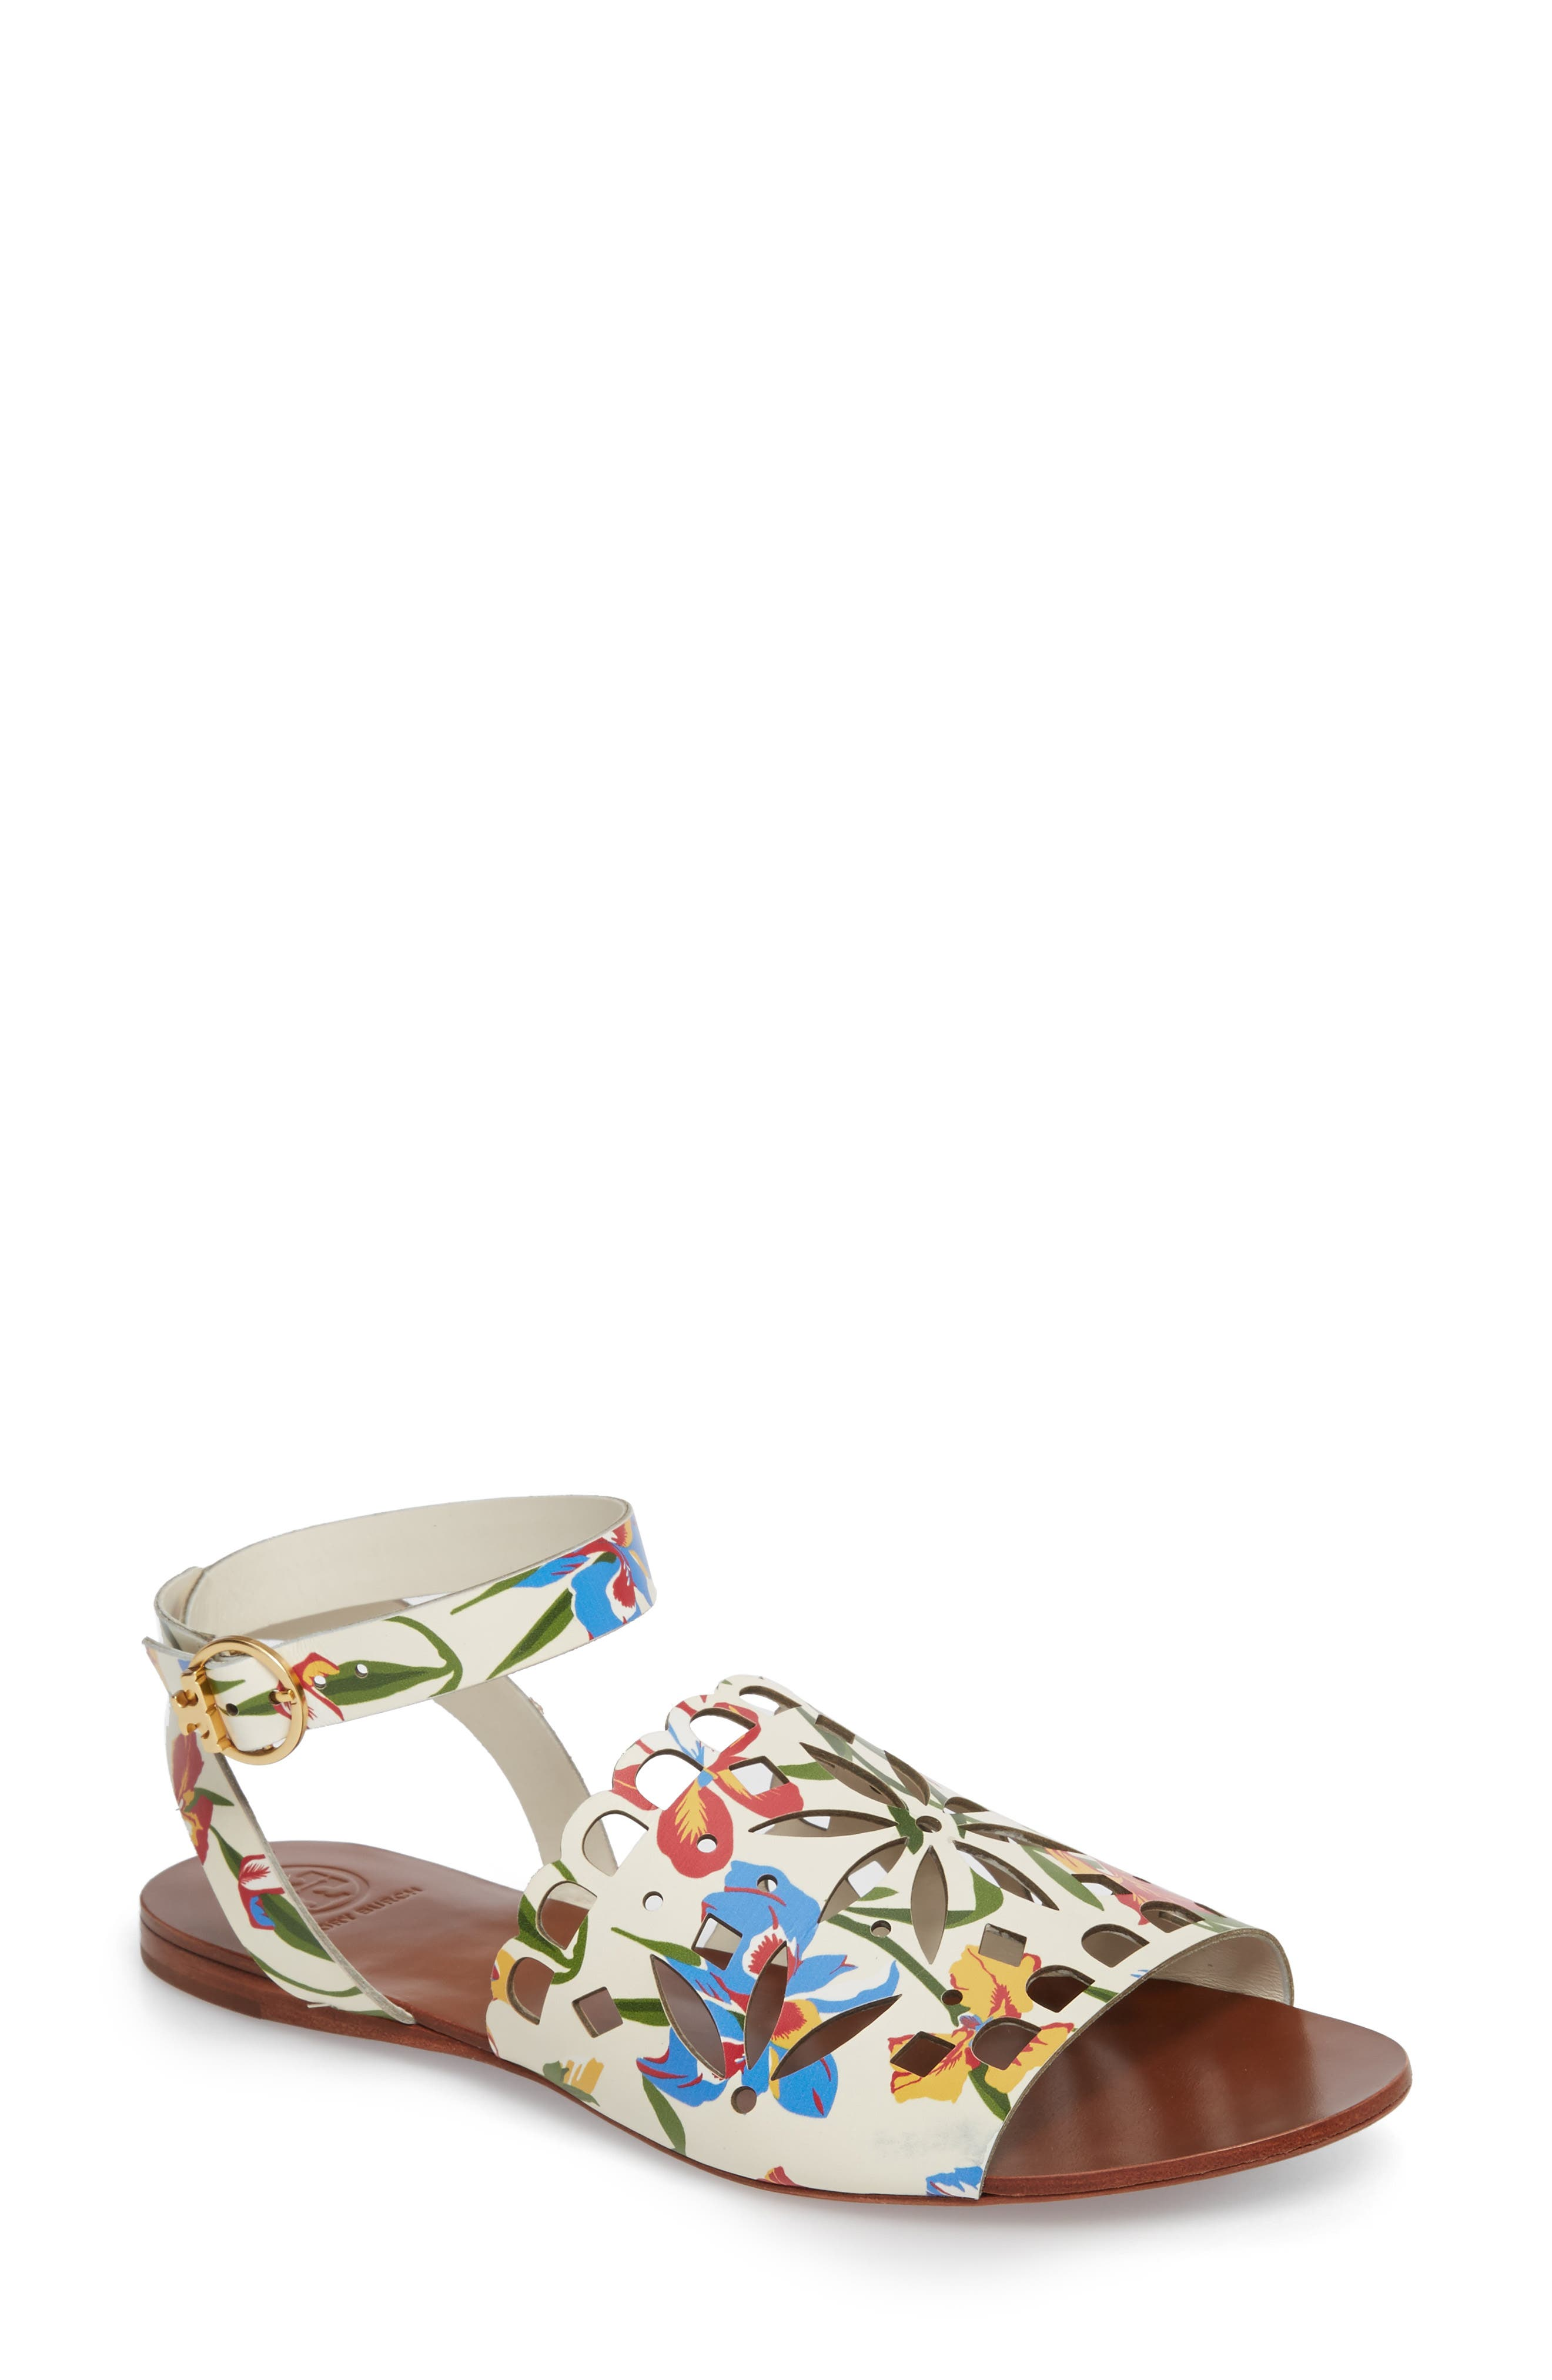 May Printed Floral Ankle Strap Sandal,                         Main,                         color, 100